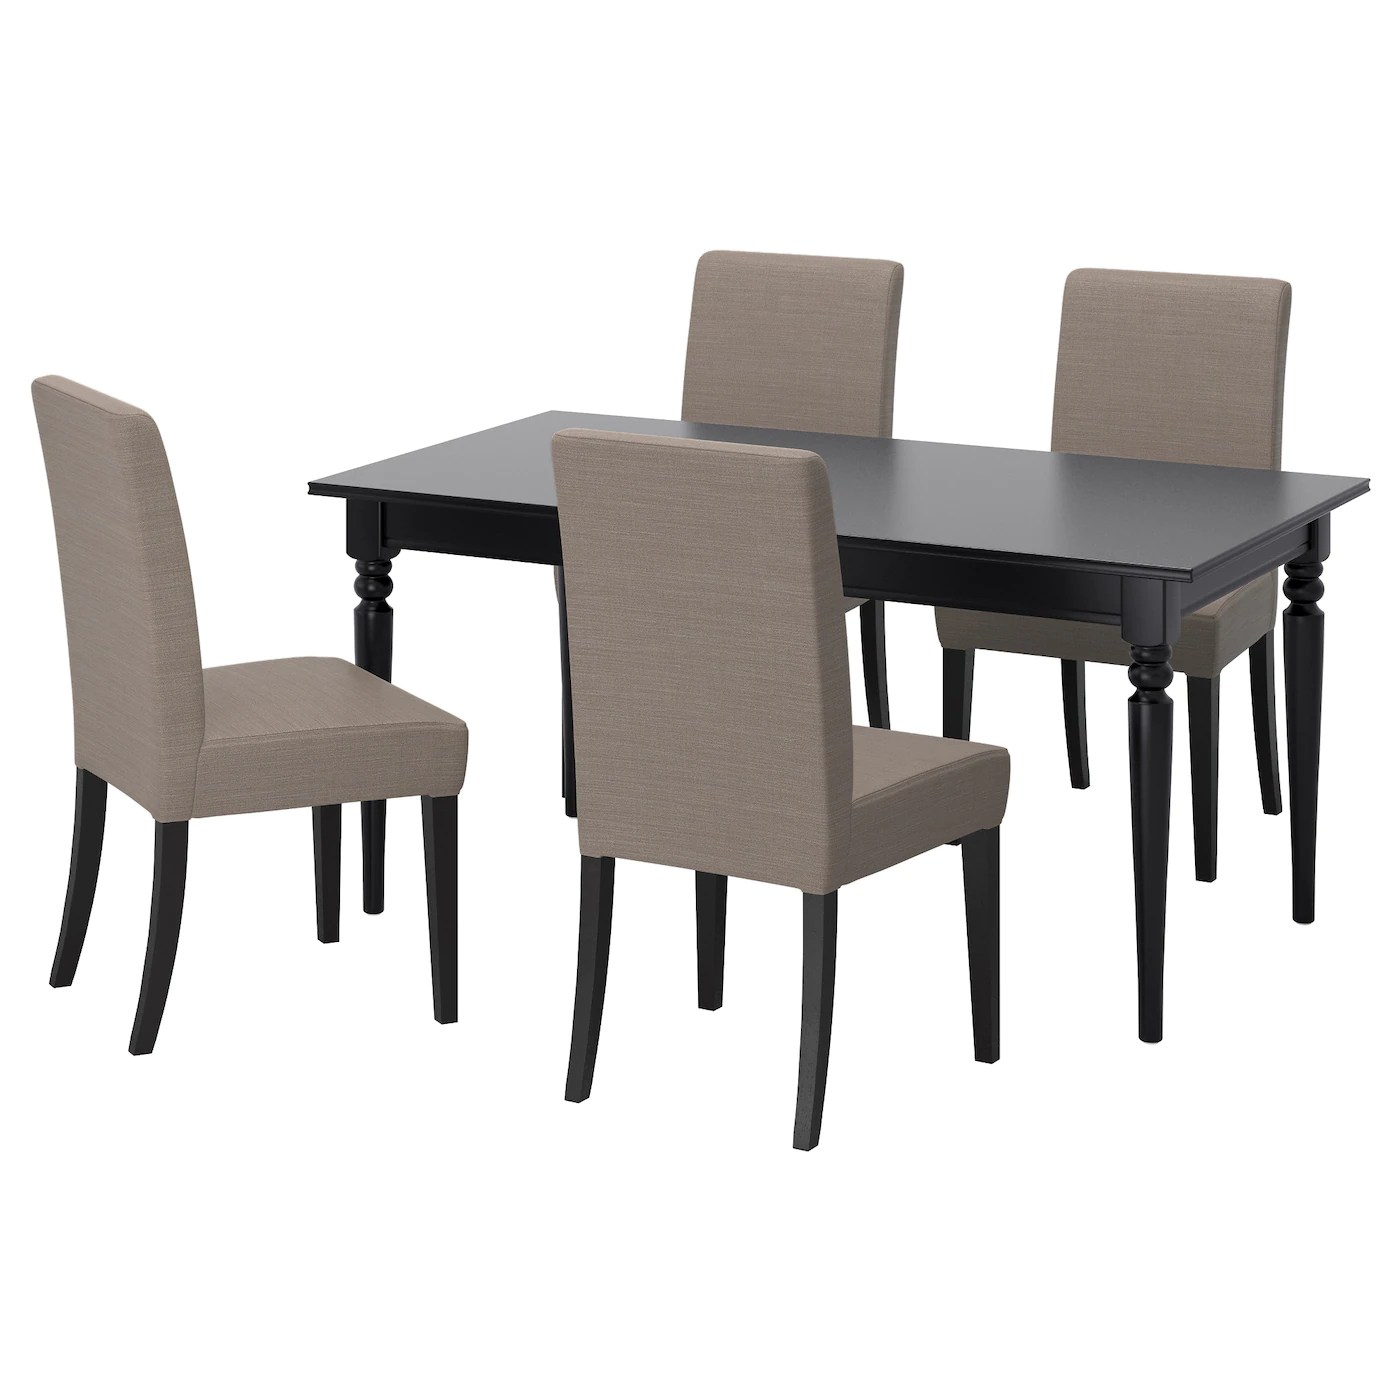 grey table and chairs boat for sale ingatorp henriksdal 4 black nolhaga